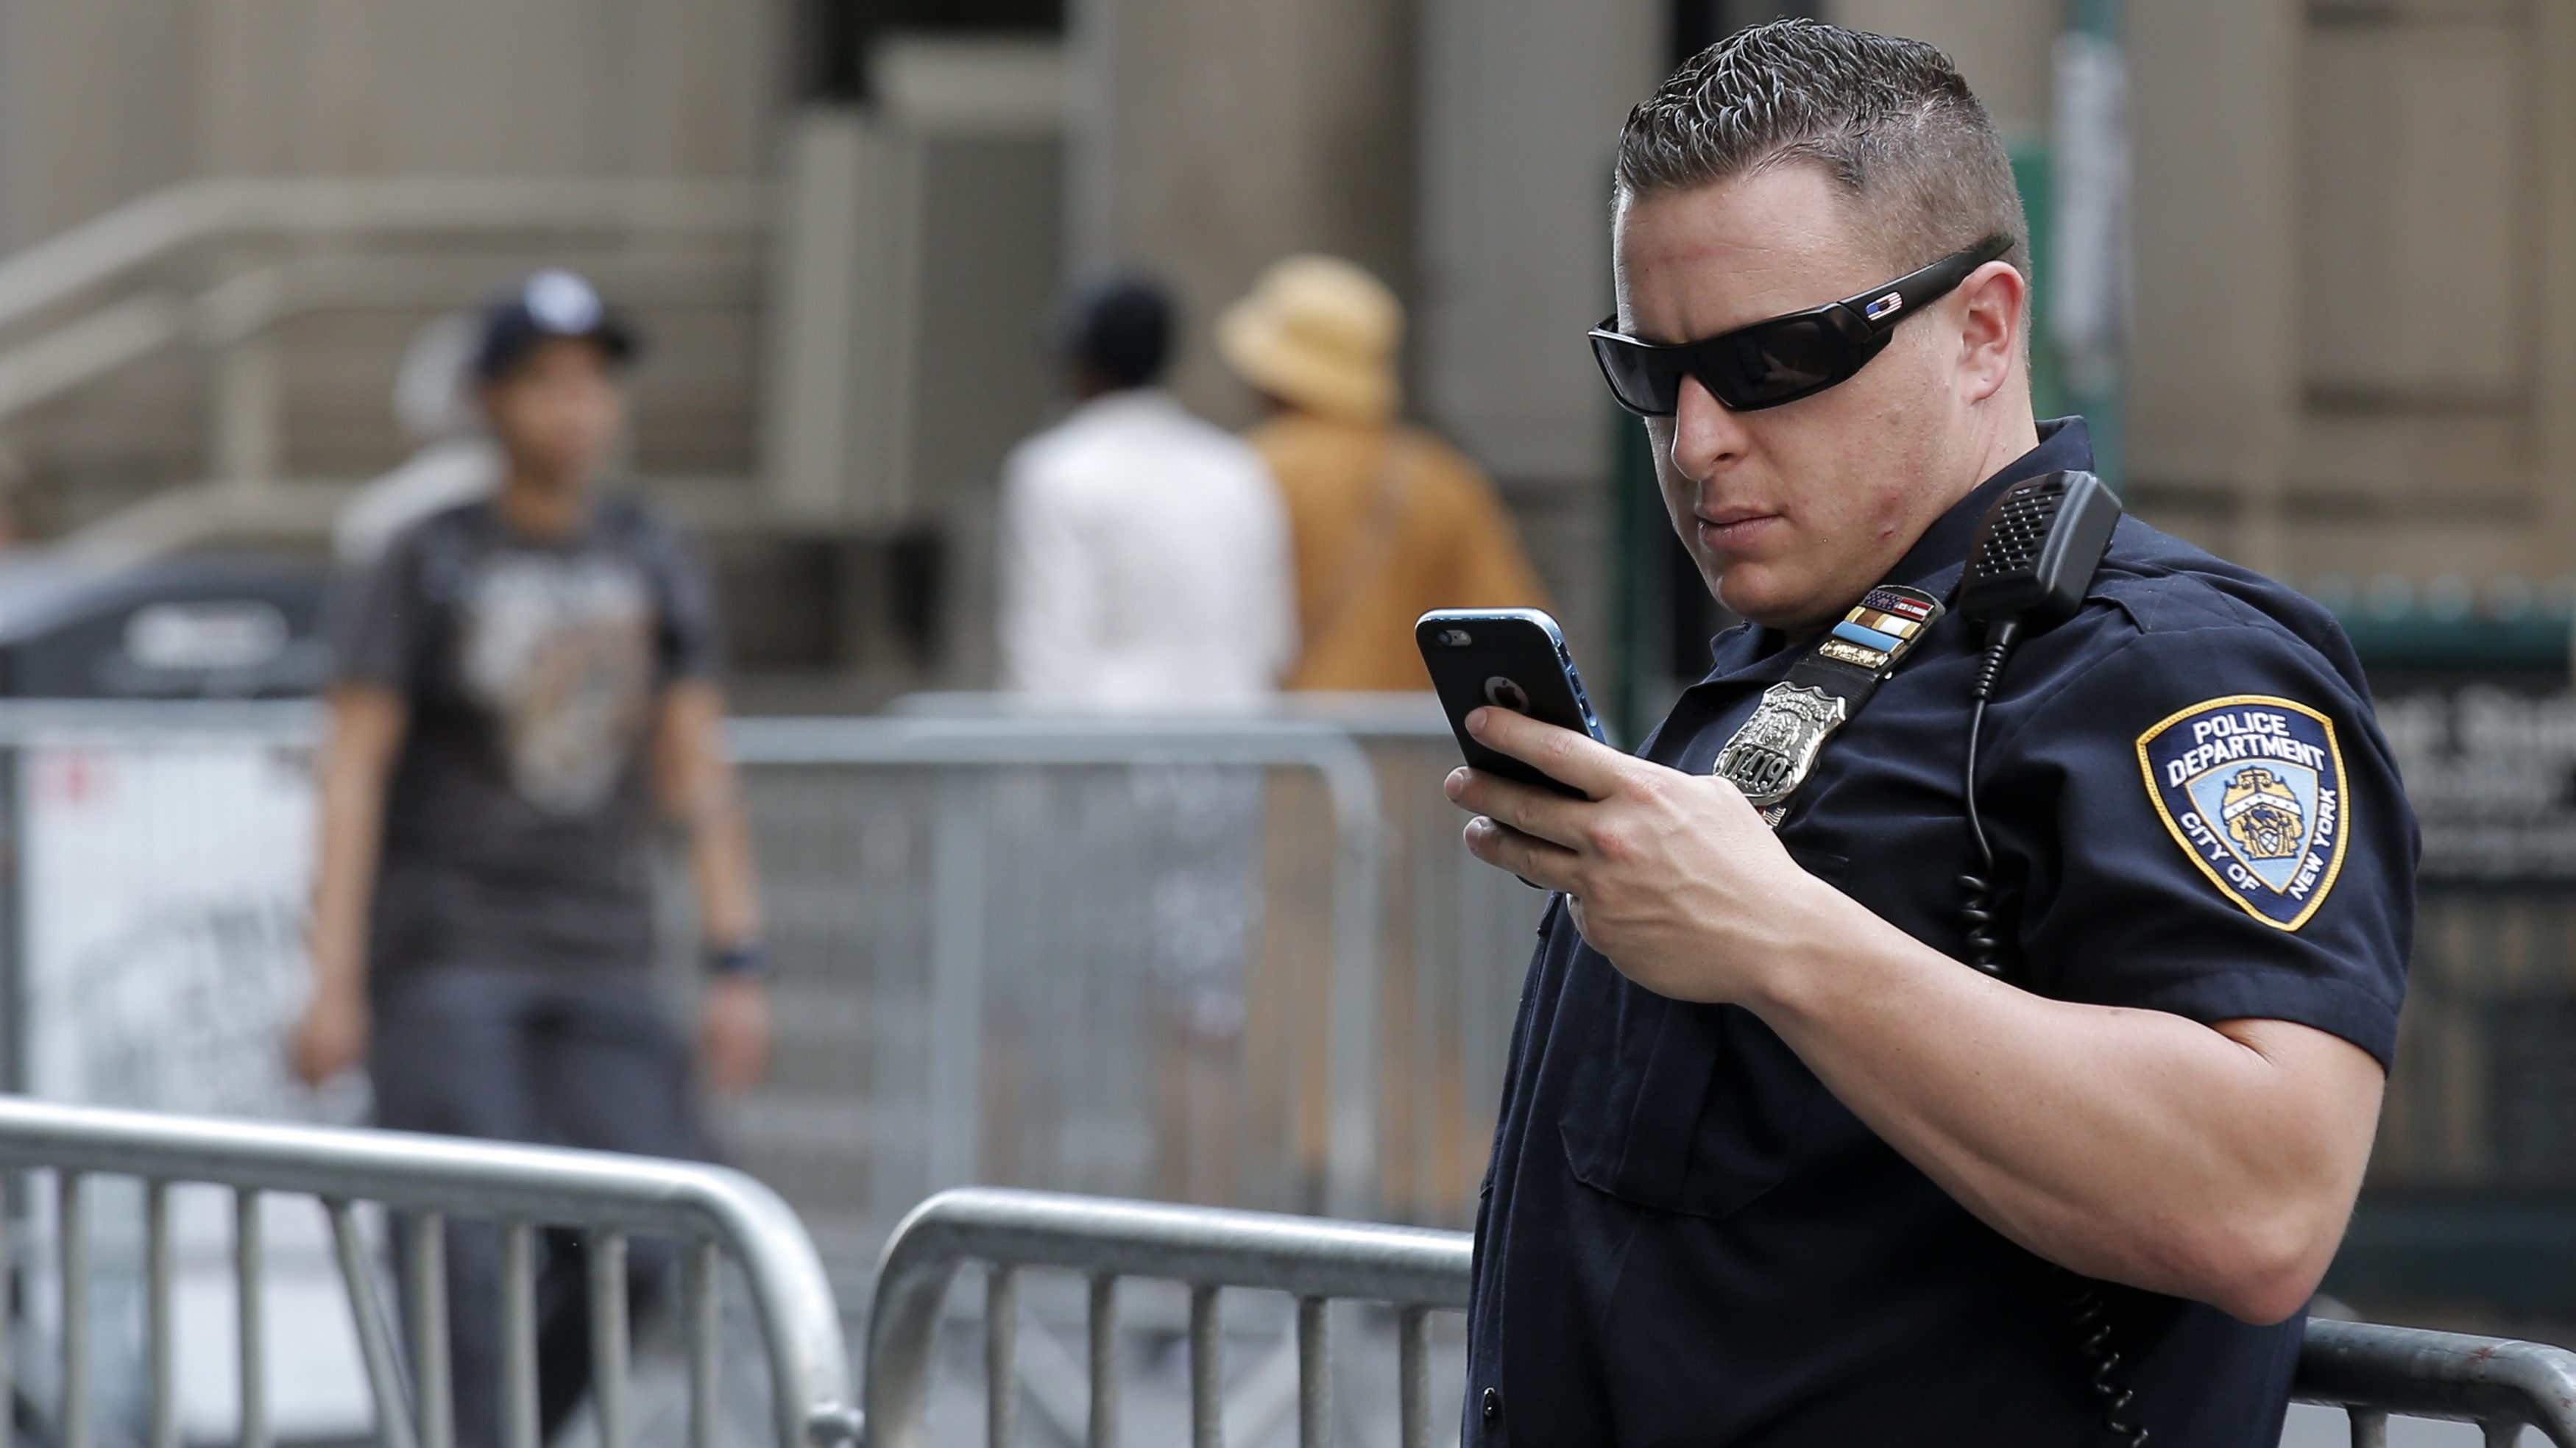 A New York City Police Department (NYPD) officer uses his iPhone while on duty in New York